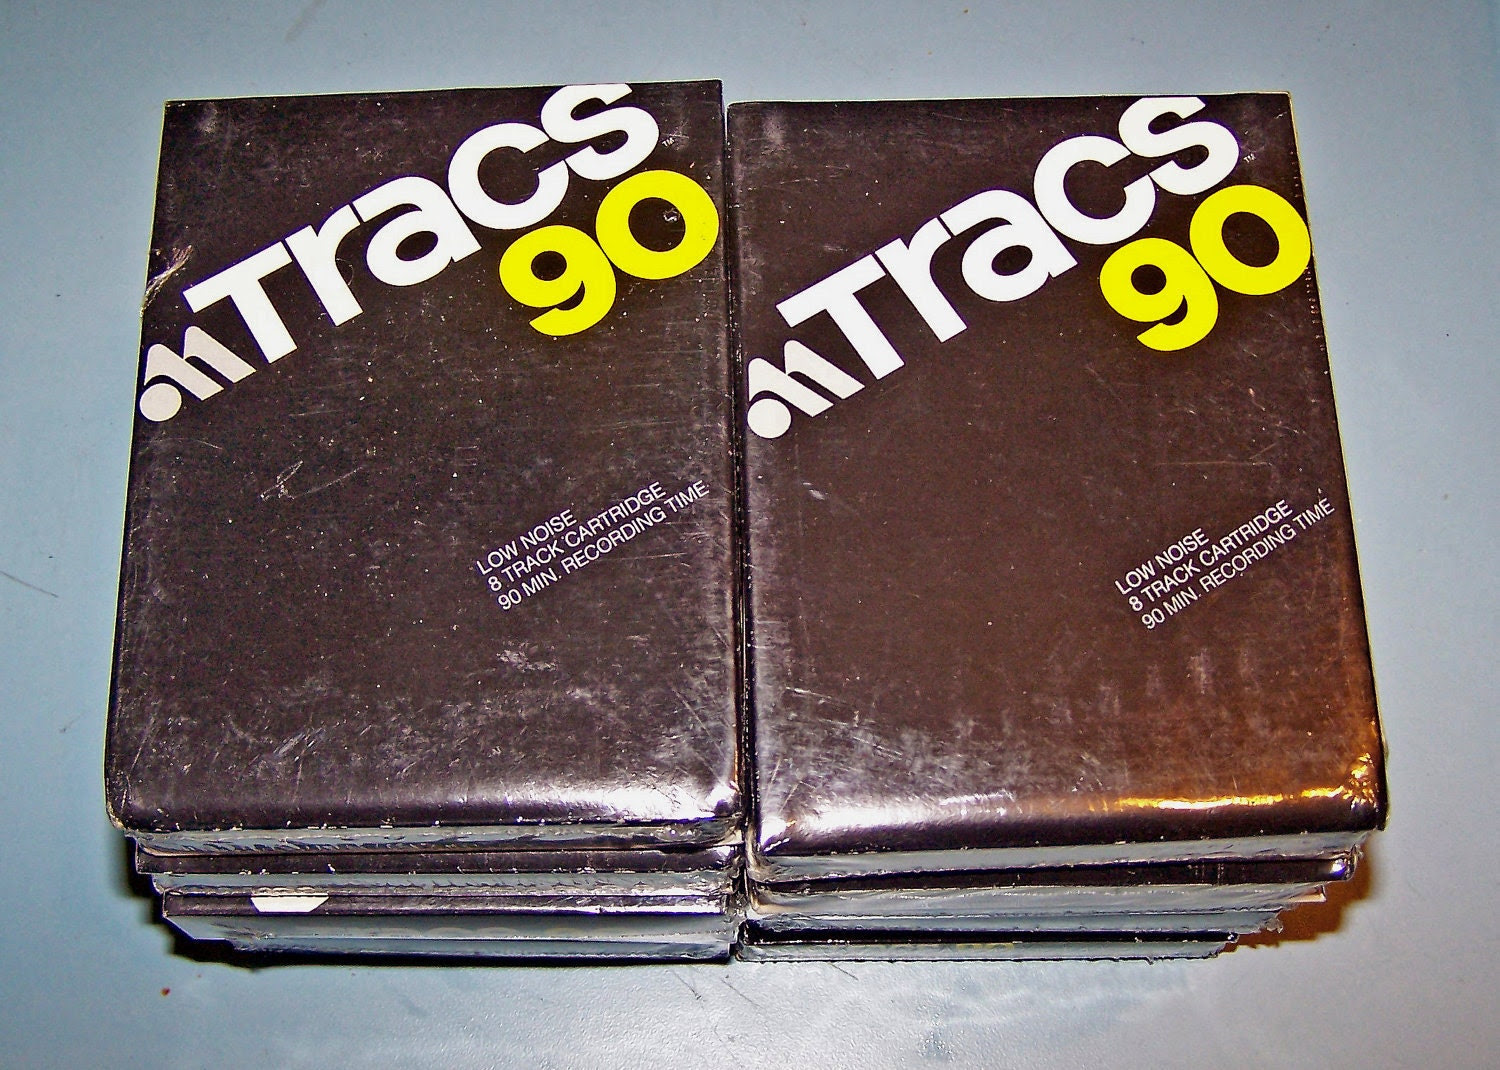 8 track tapes - deals on 1001 Blocks